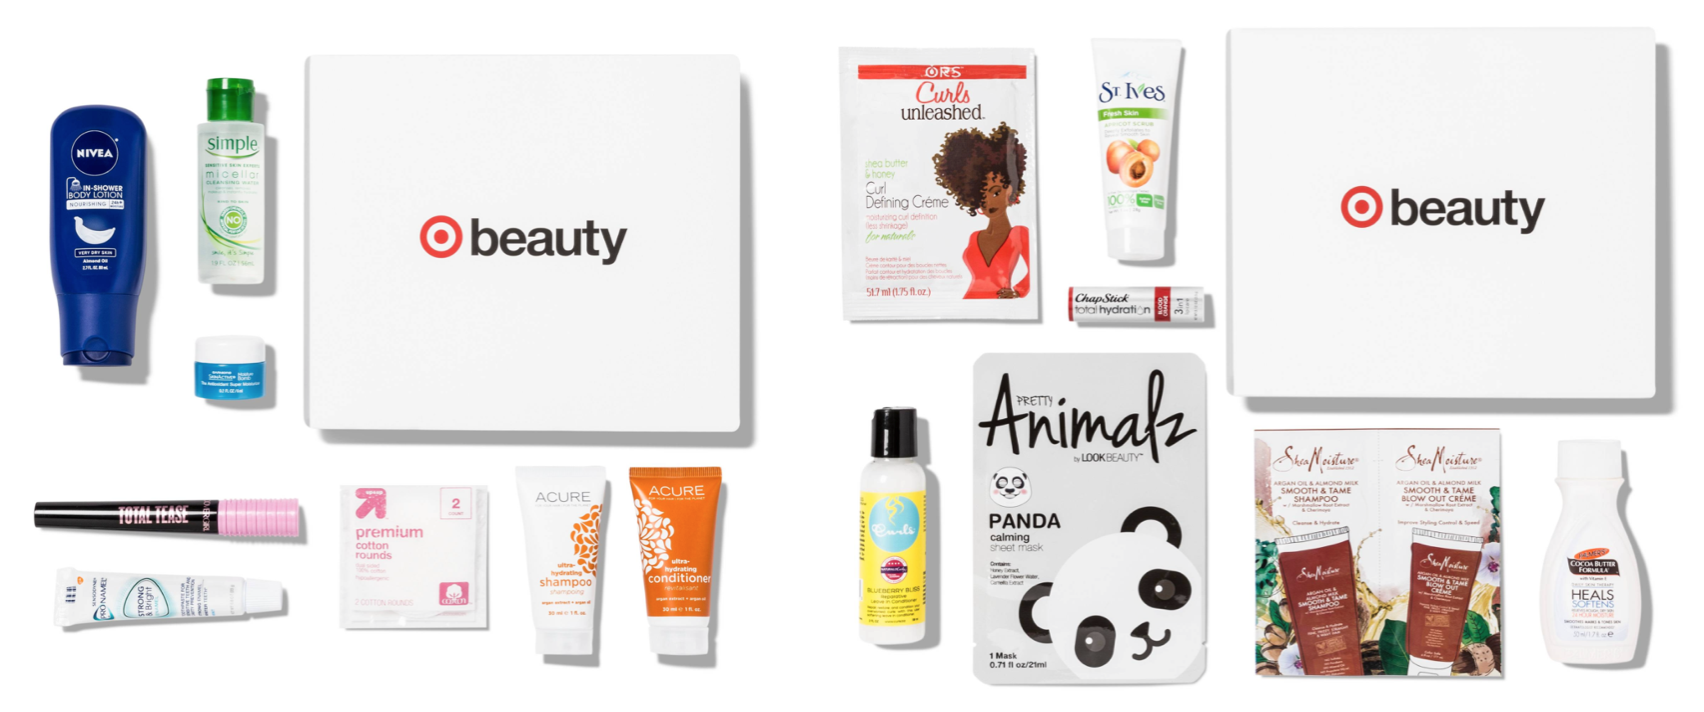 HOT* Target: Two New September Beauty Boxes Just $7 each